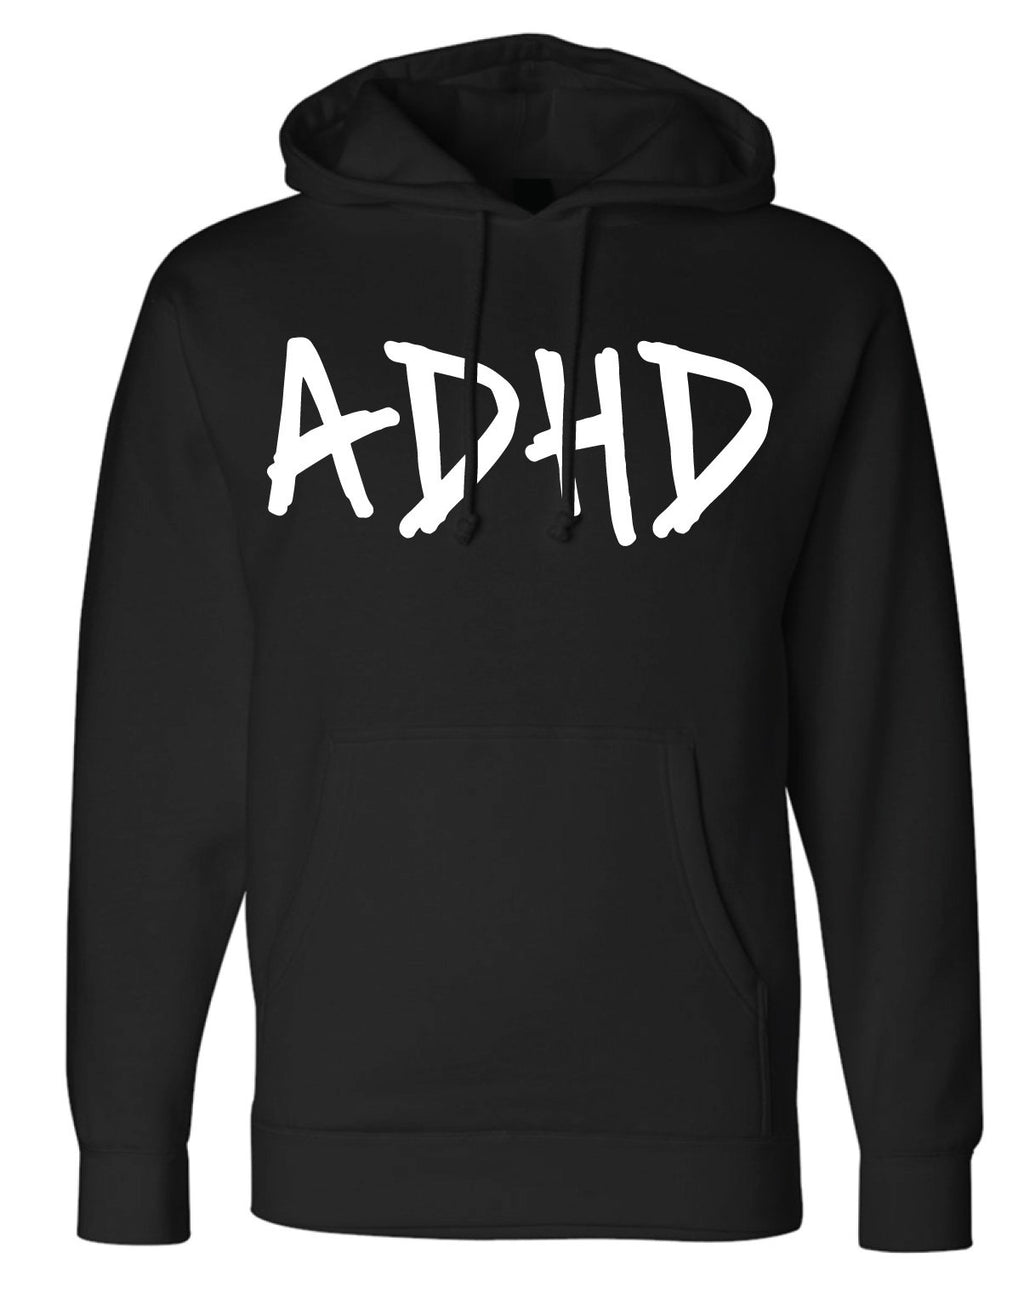 Black ADHD Hoodie + Instant ADHD Digital Download